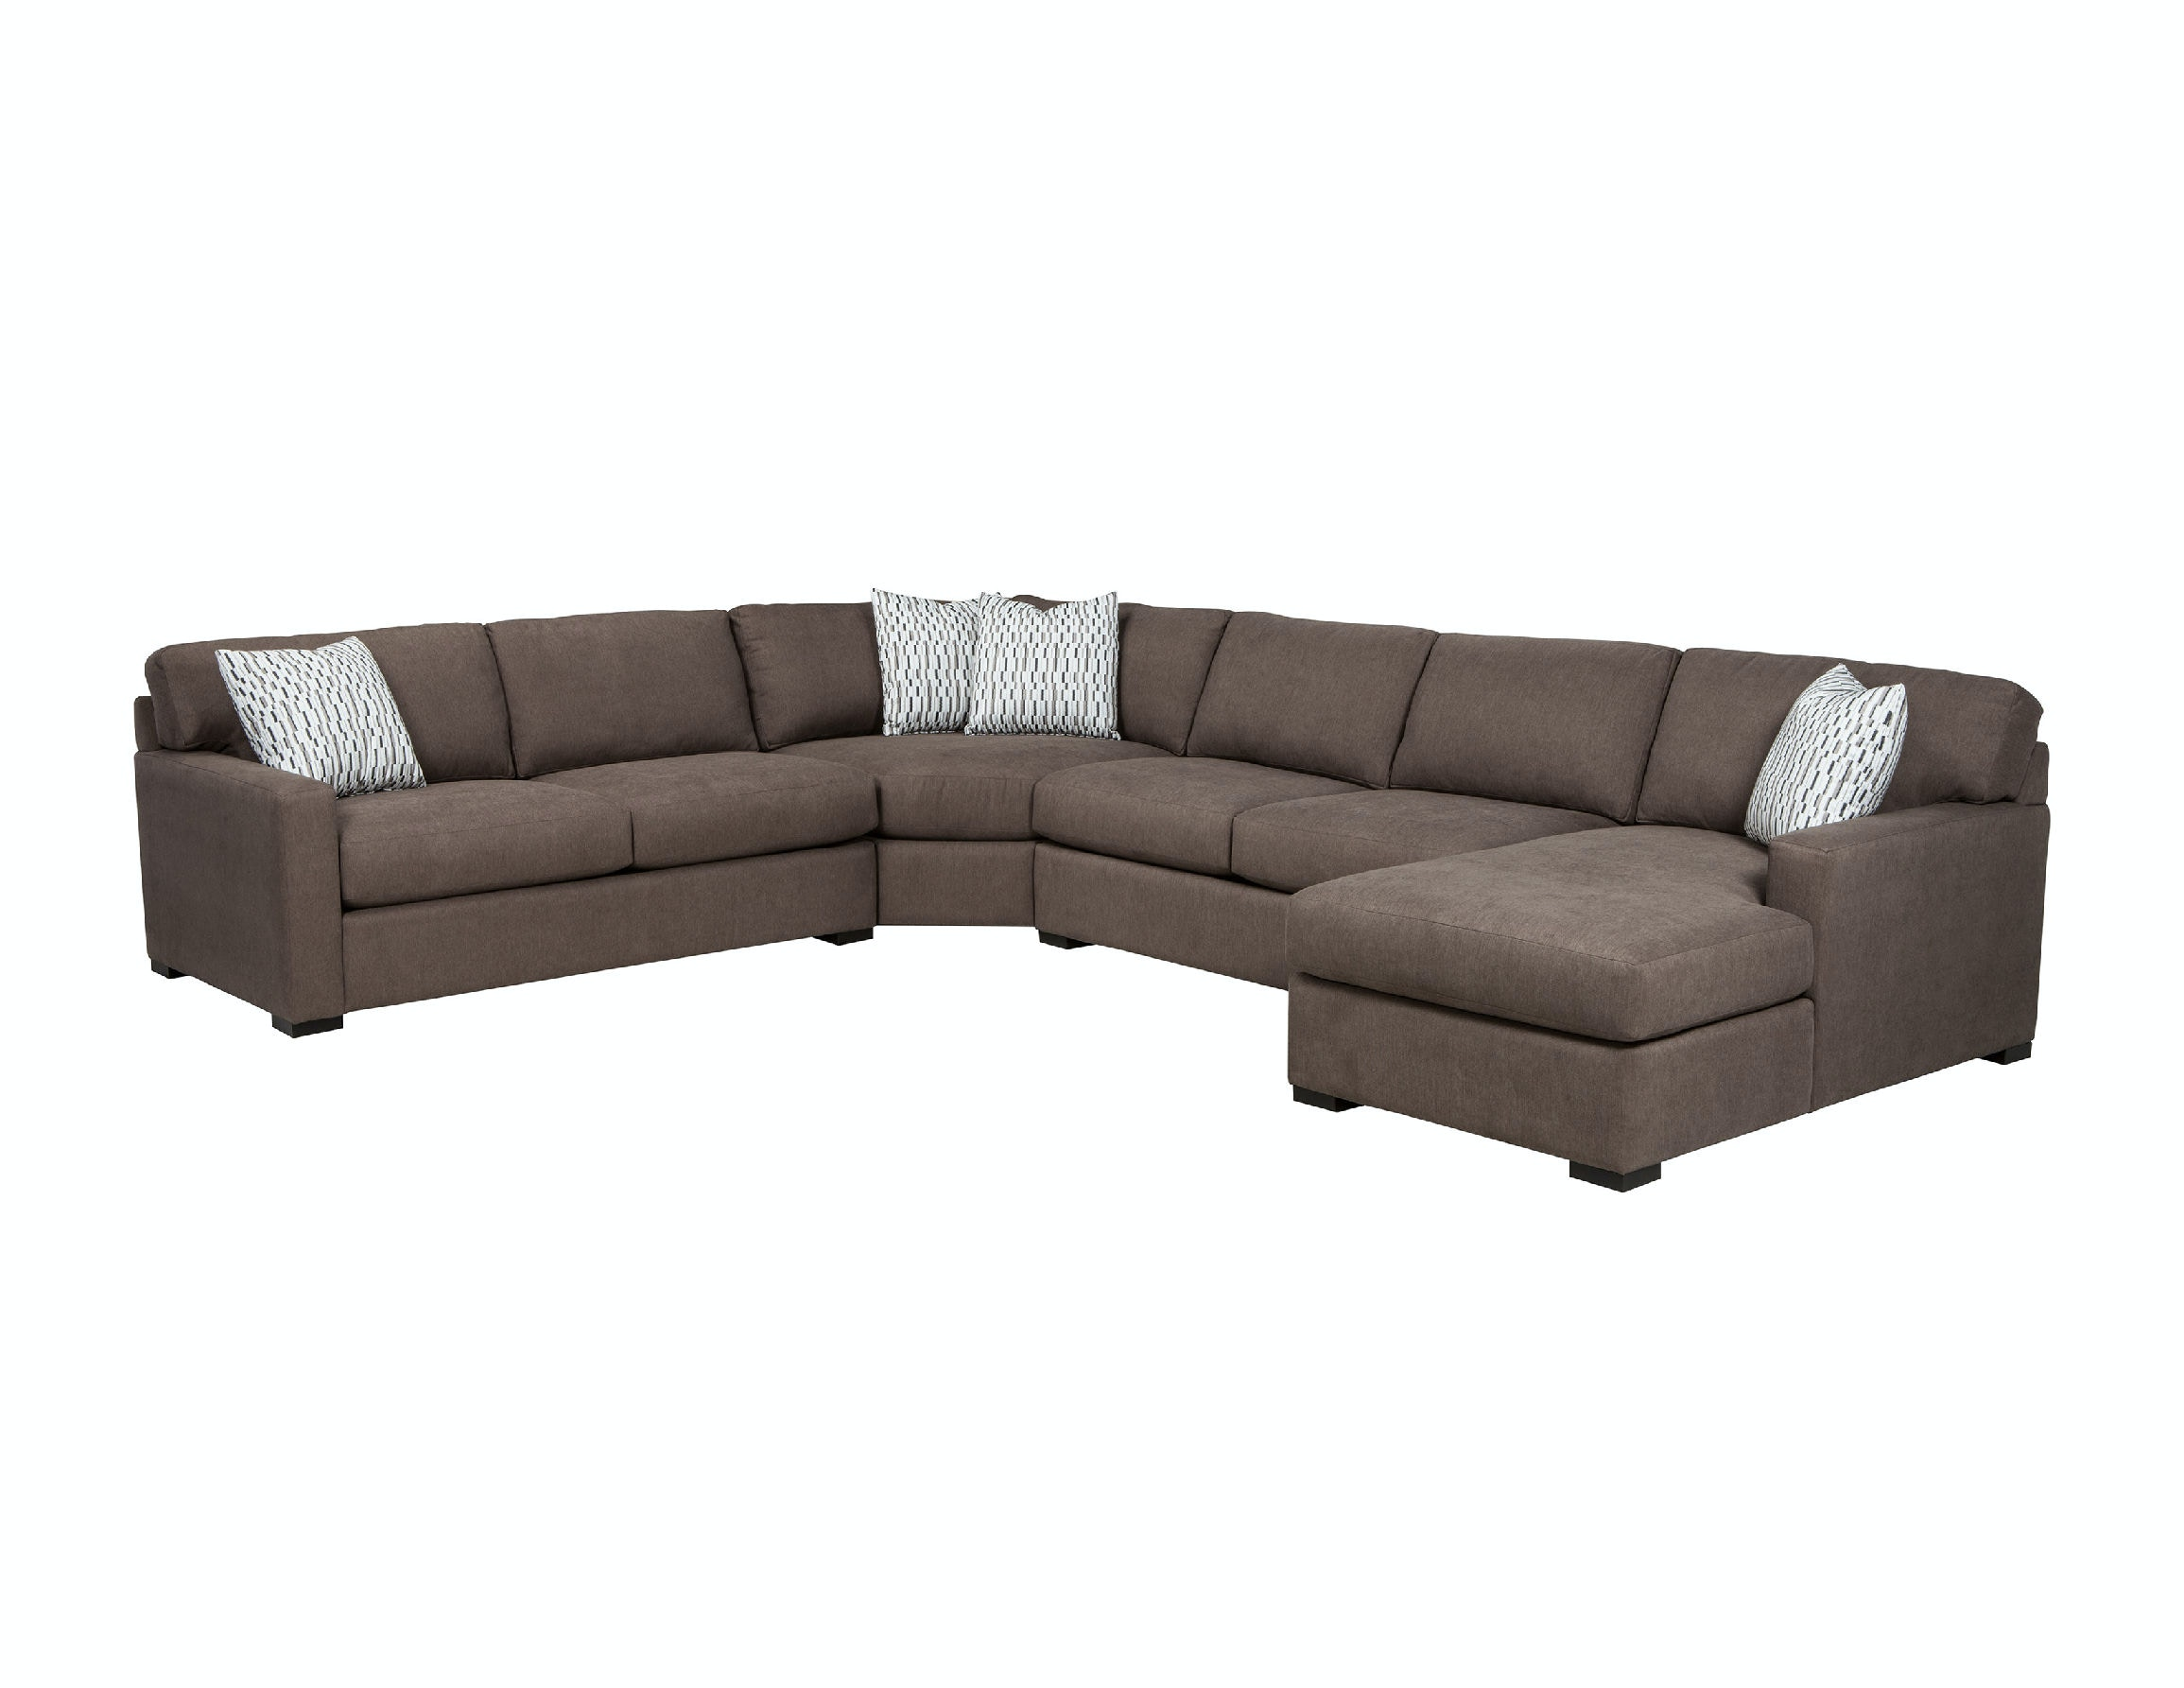 Furniture Stores In Dickinson Nd #24: Jonathan Louis International Gregory Sectional 367-Sectional.